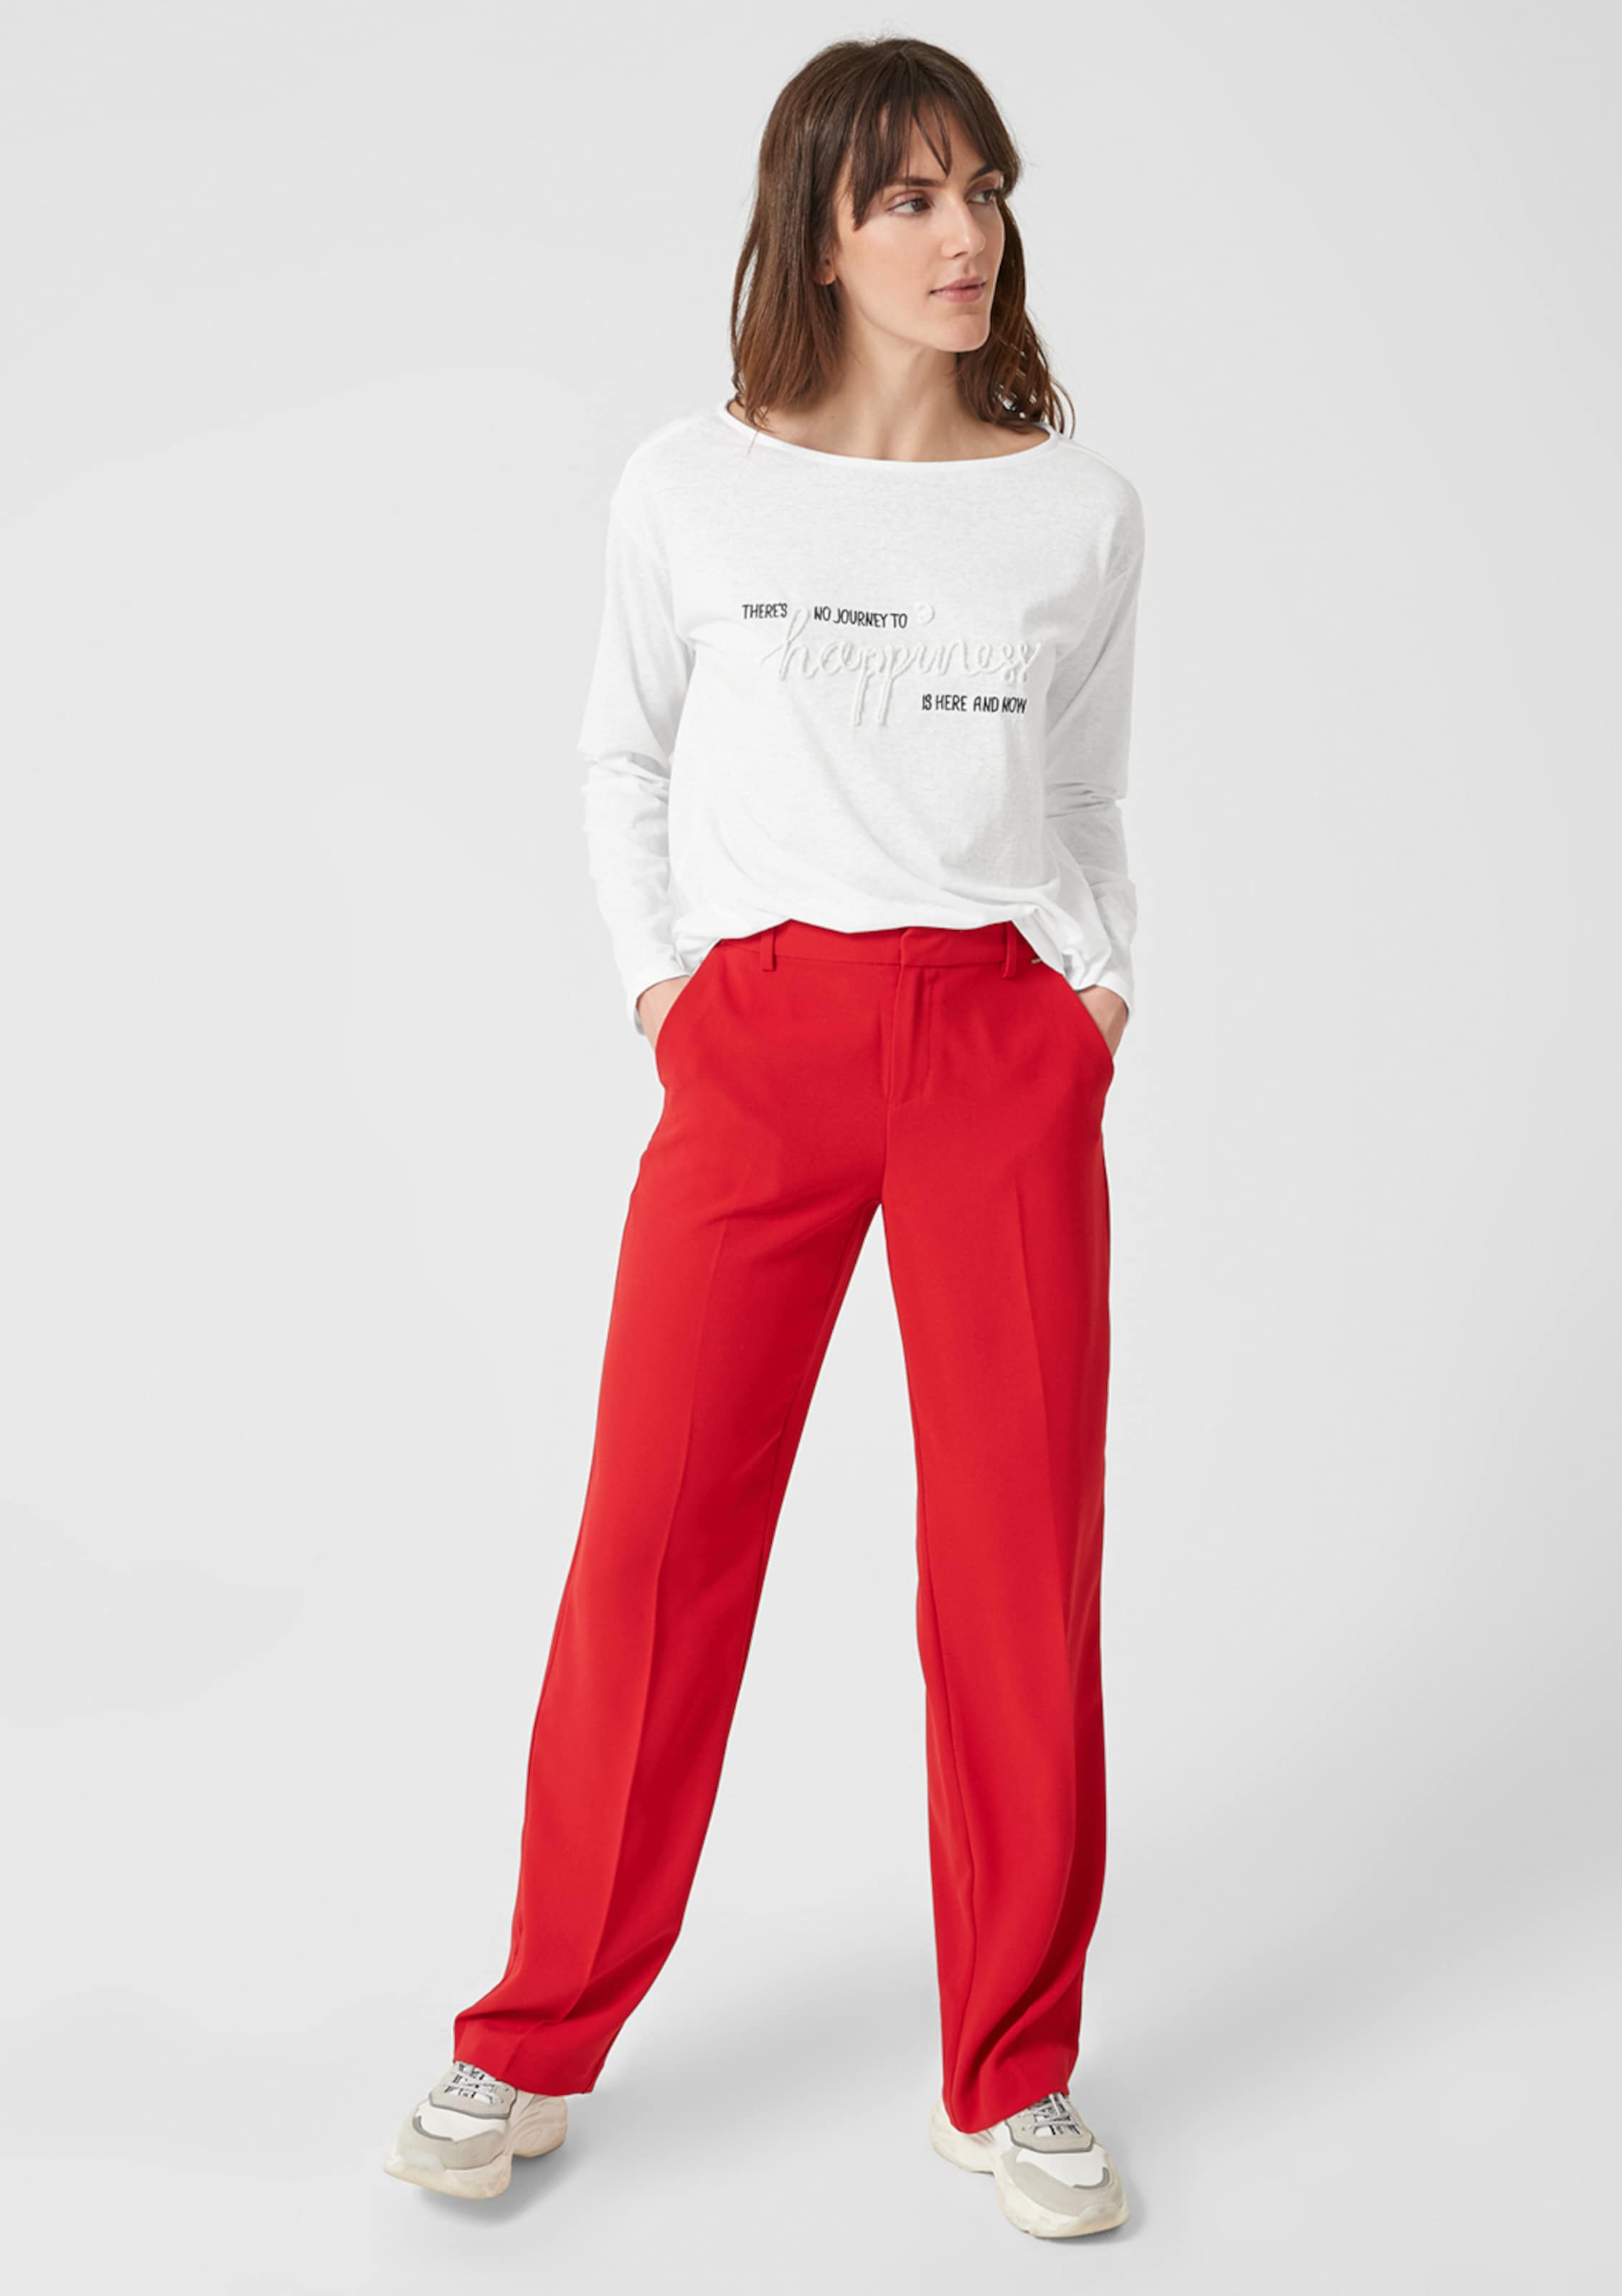 Label oliver Red S In Longsleeve Weiß doCxBe